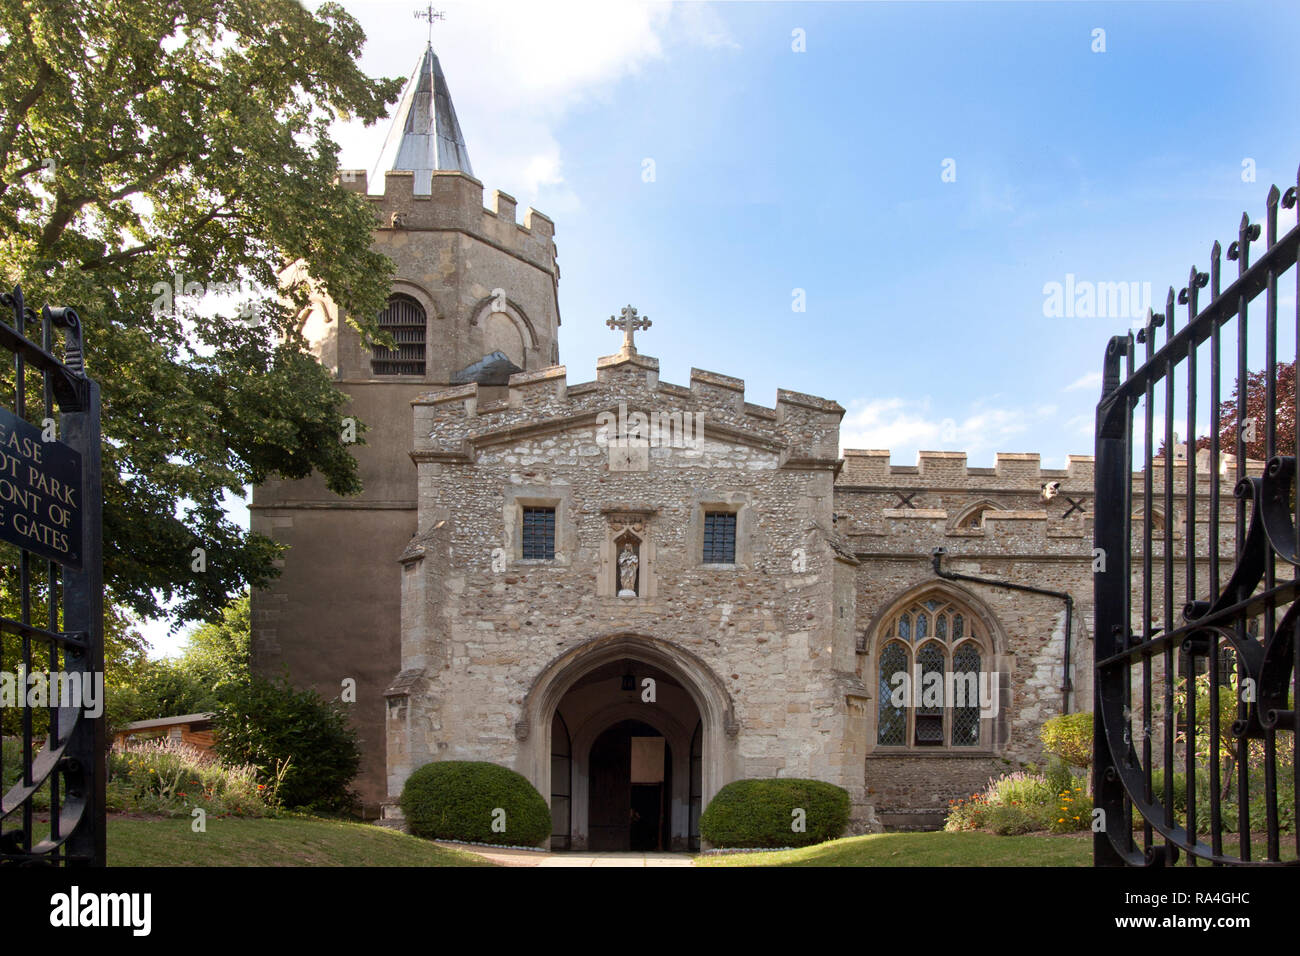 parish church of St Mary the Virgin, Great Shelford, Cambridge, Cambridgeshire, England - Stock Image